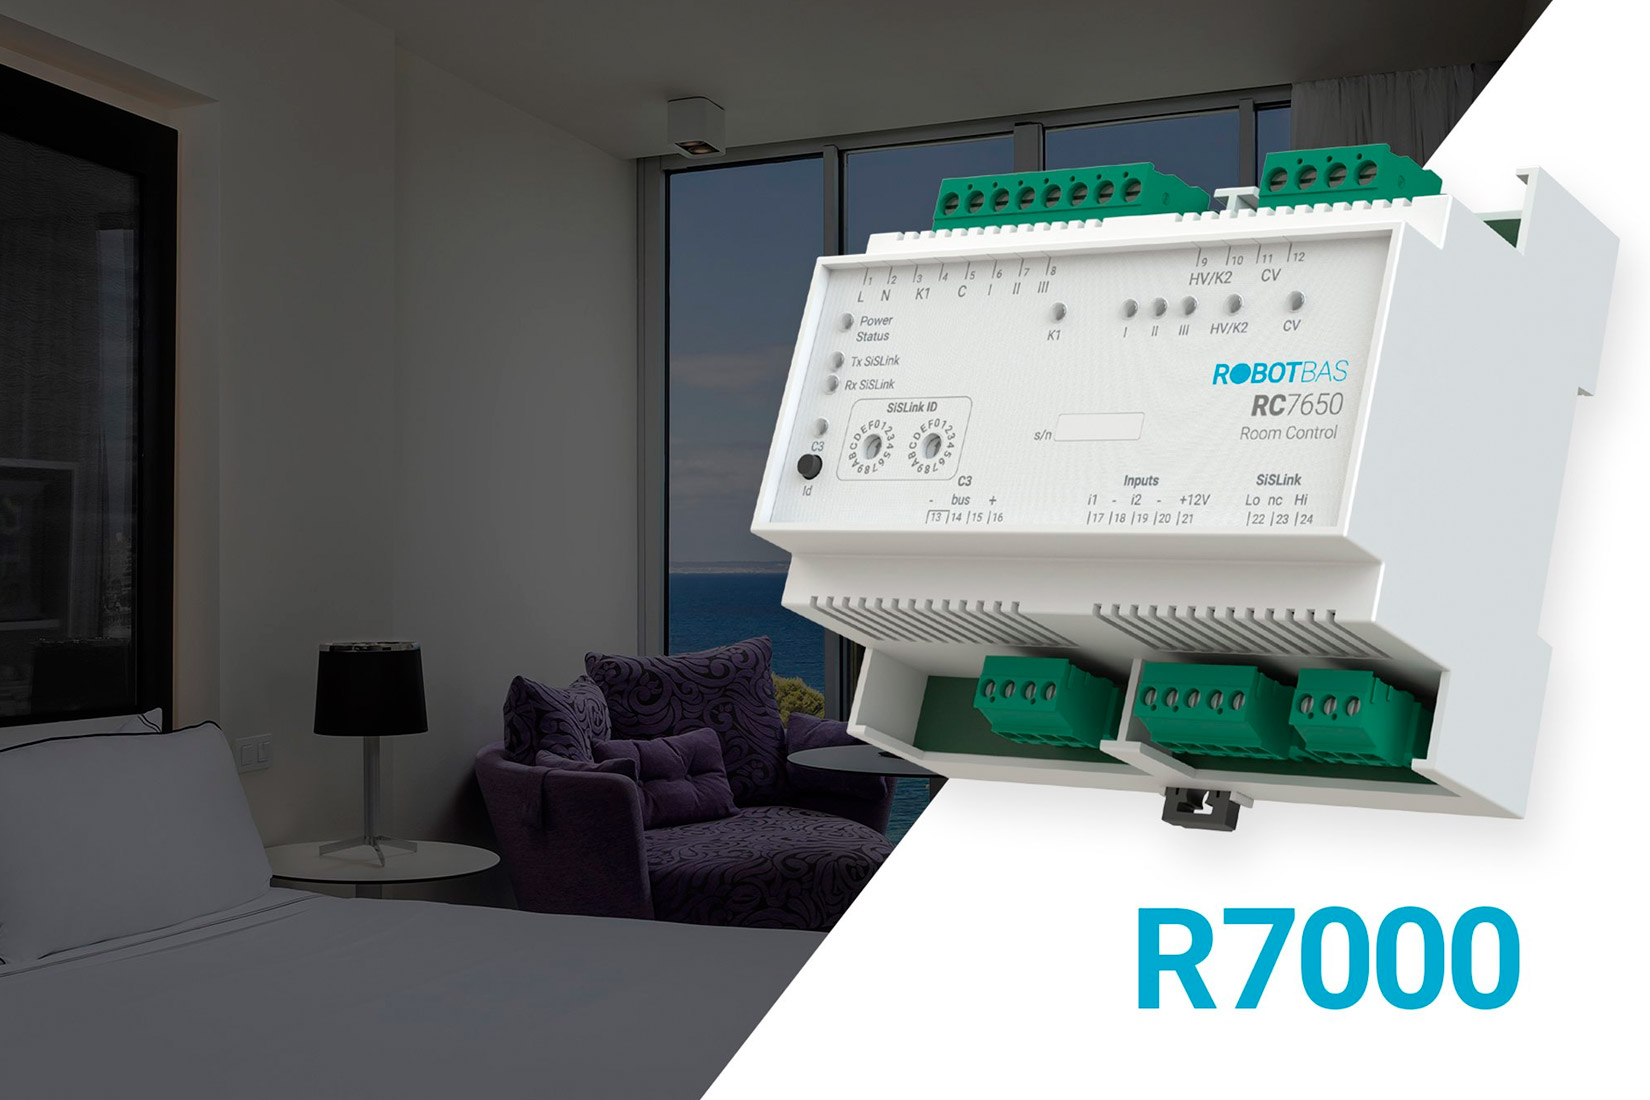 Advantages of upgrading the R6000 series to the R7000 series of ROBOTBAS